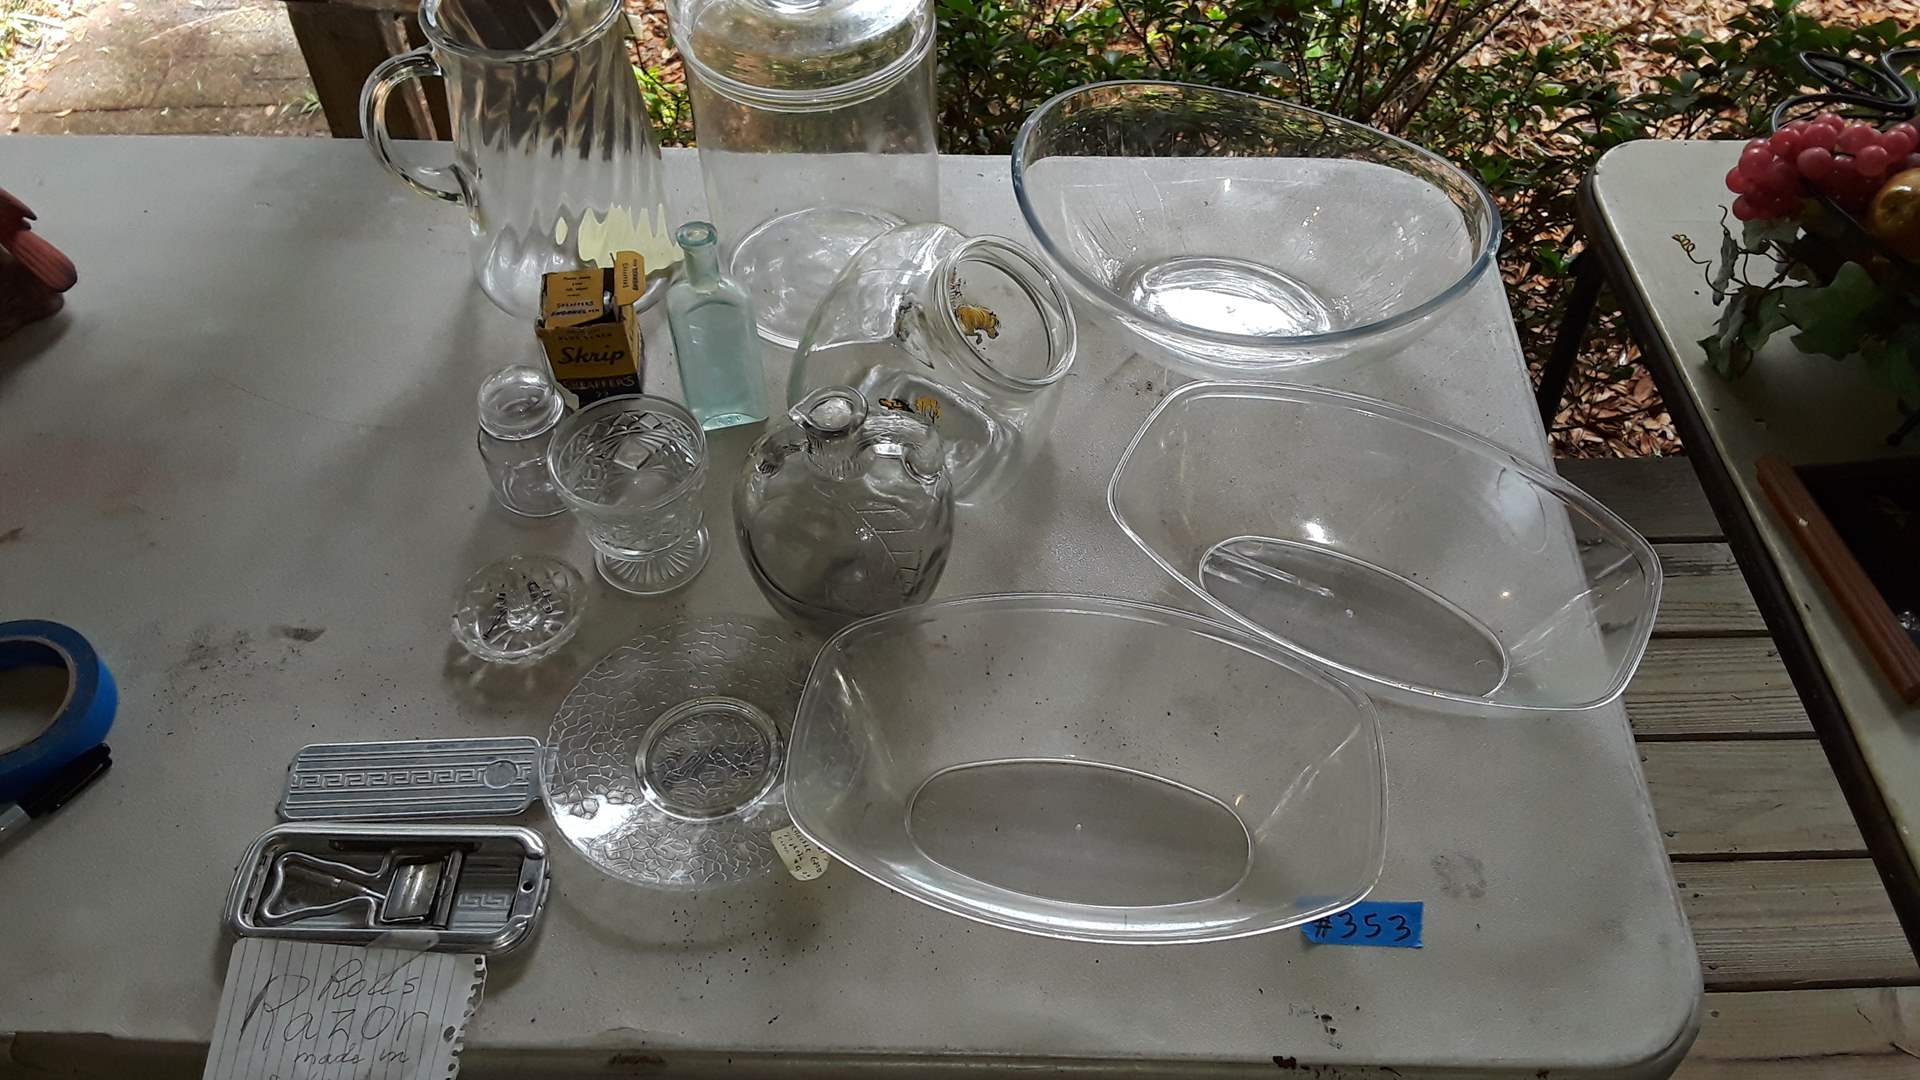 Lot # 353 ROLLS RAZOR, VINTAGE COOKIE JAR NO LID, ANTIQUE CLEAR GLASS, MATCHING PLASTIC OVAL DISHES